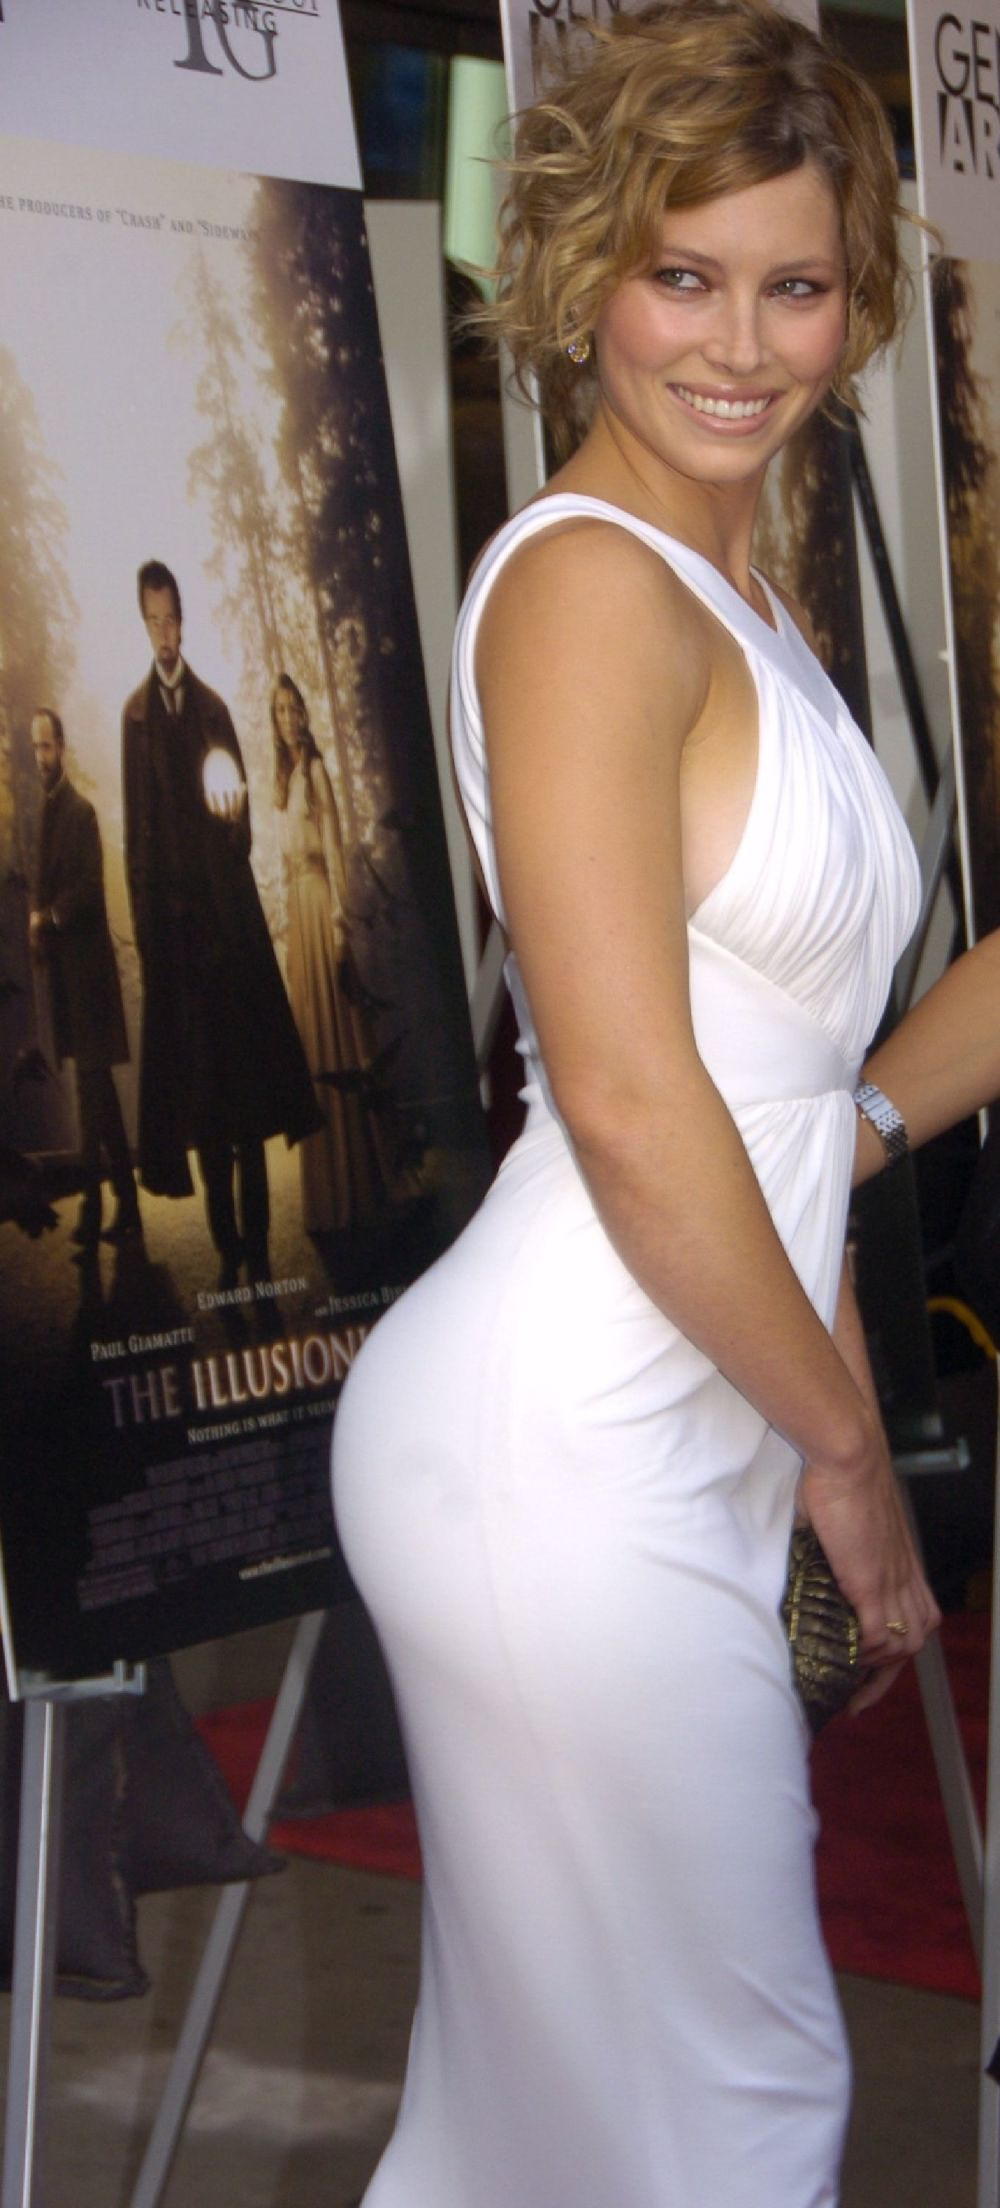 ������ ���� ����� ������ ���� ������ jessica-biel-ass-illusionist-01.jpg